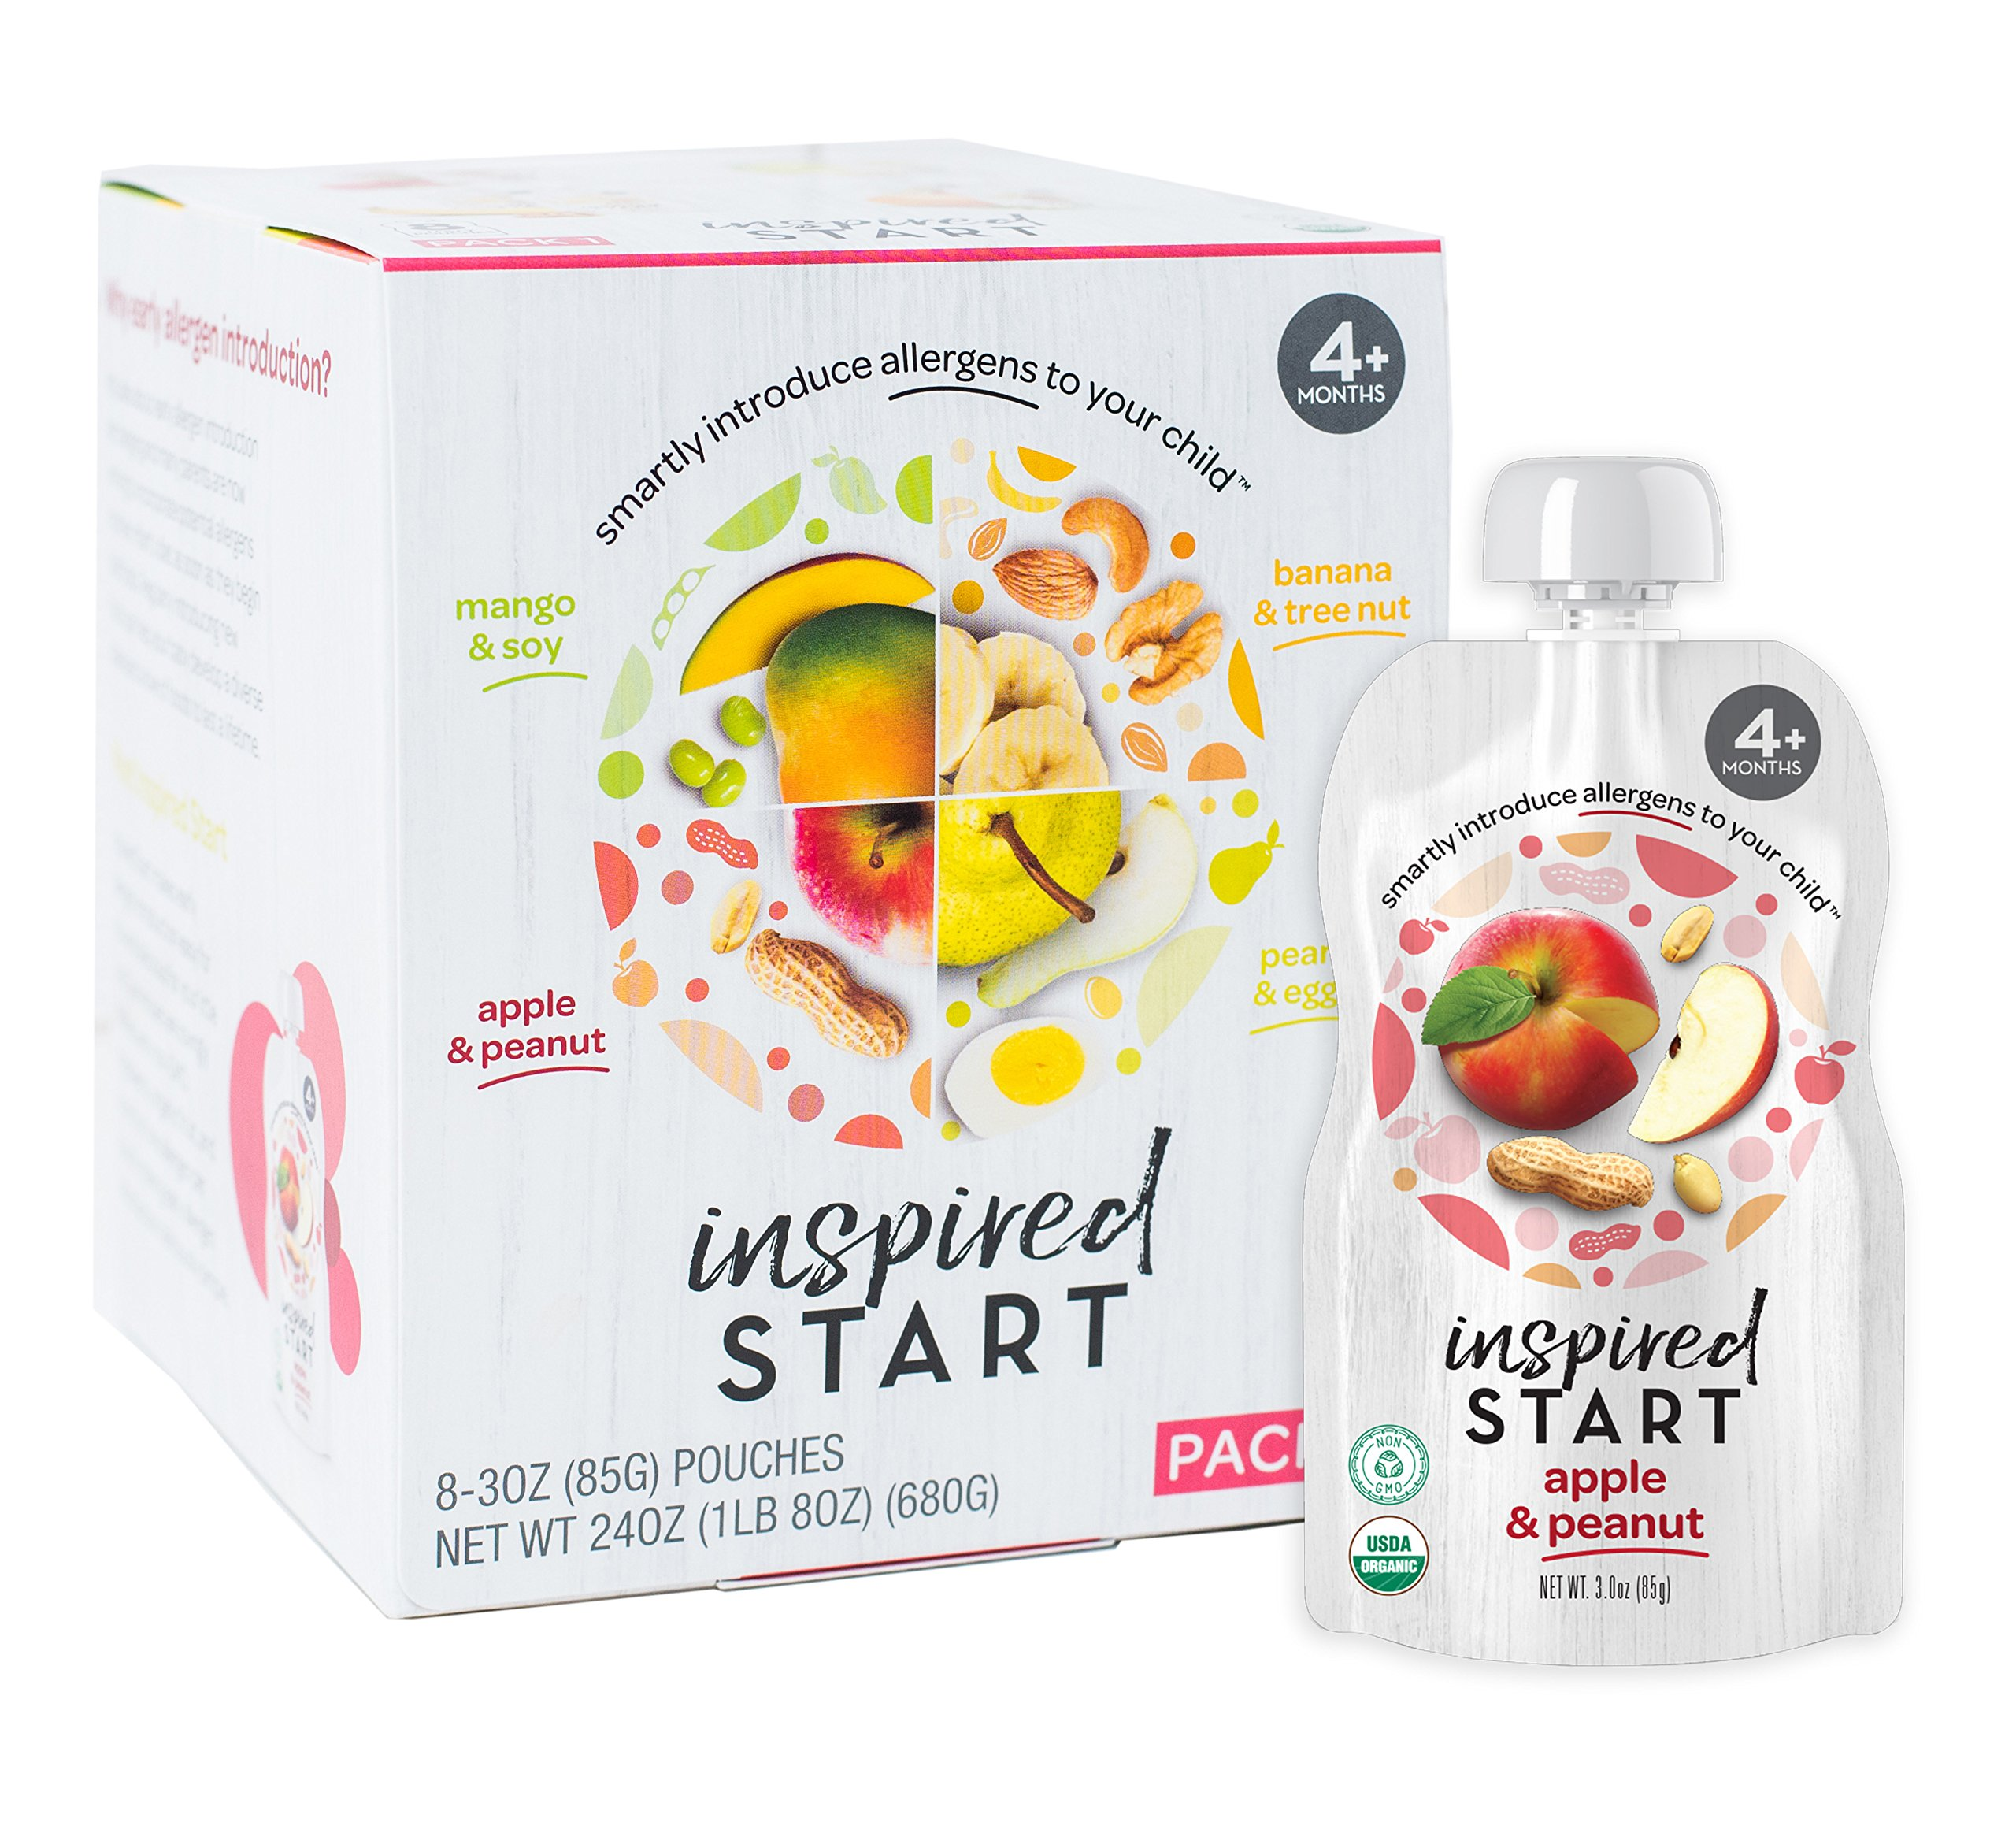 Early Allergen Introduction Baby Food: Inspired Start Pack 1, 3 oz. (Pack of 8 baby food pouches) - Organic, Non-GMO, include peanut, treenut, soy and egg in baby's diet by Inspired Start